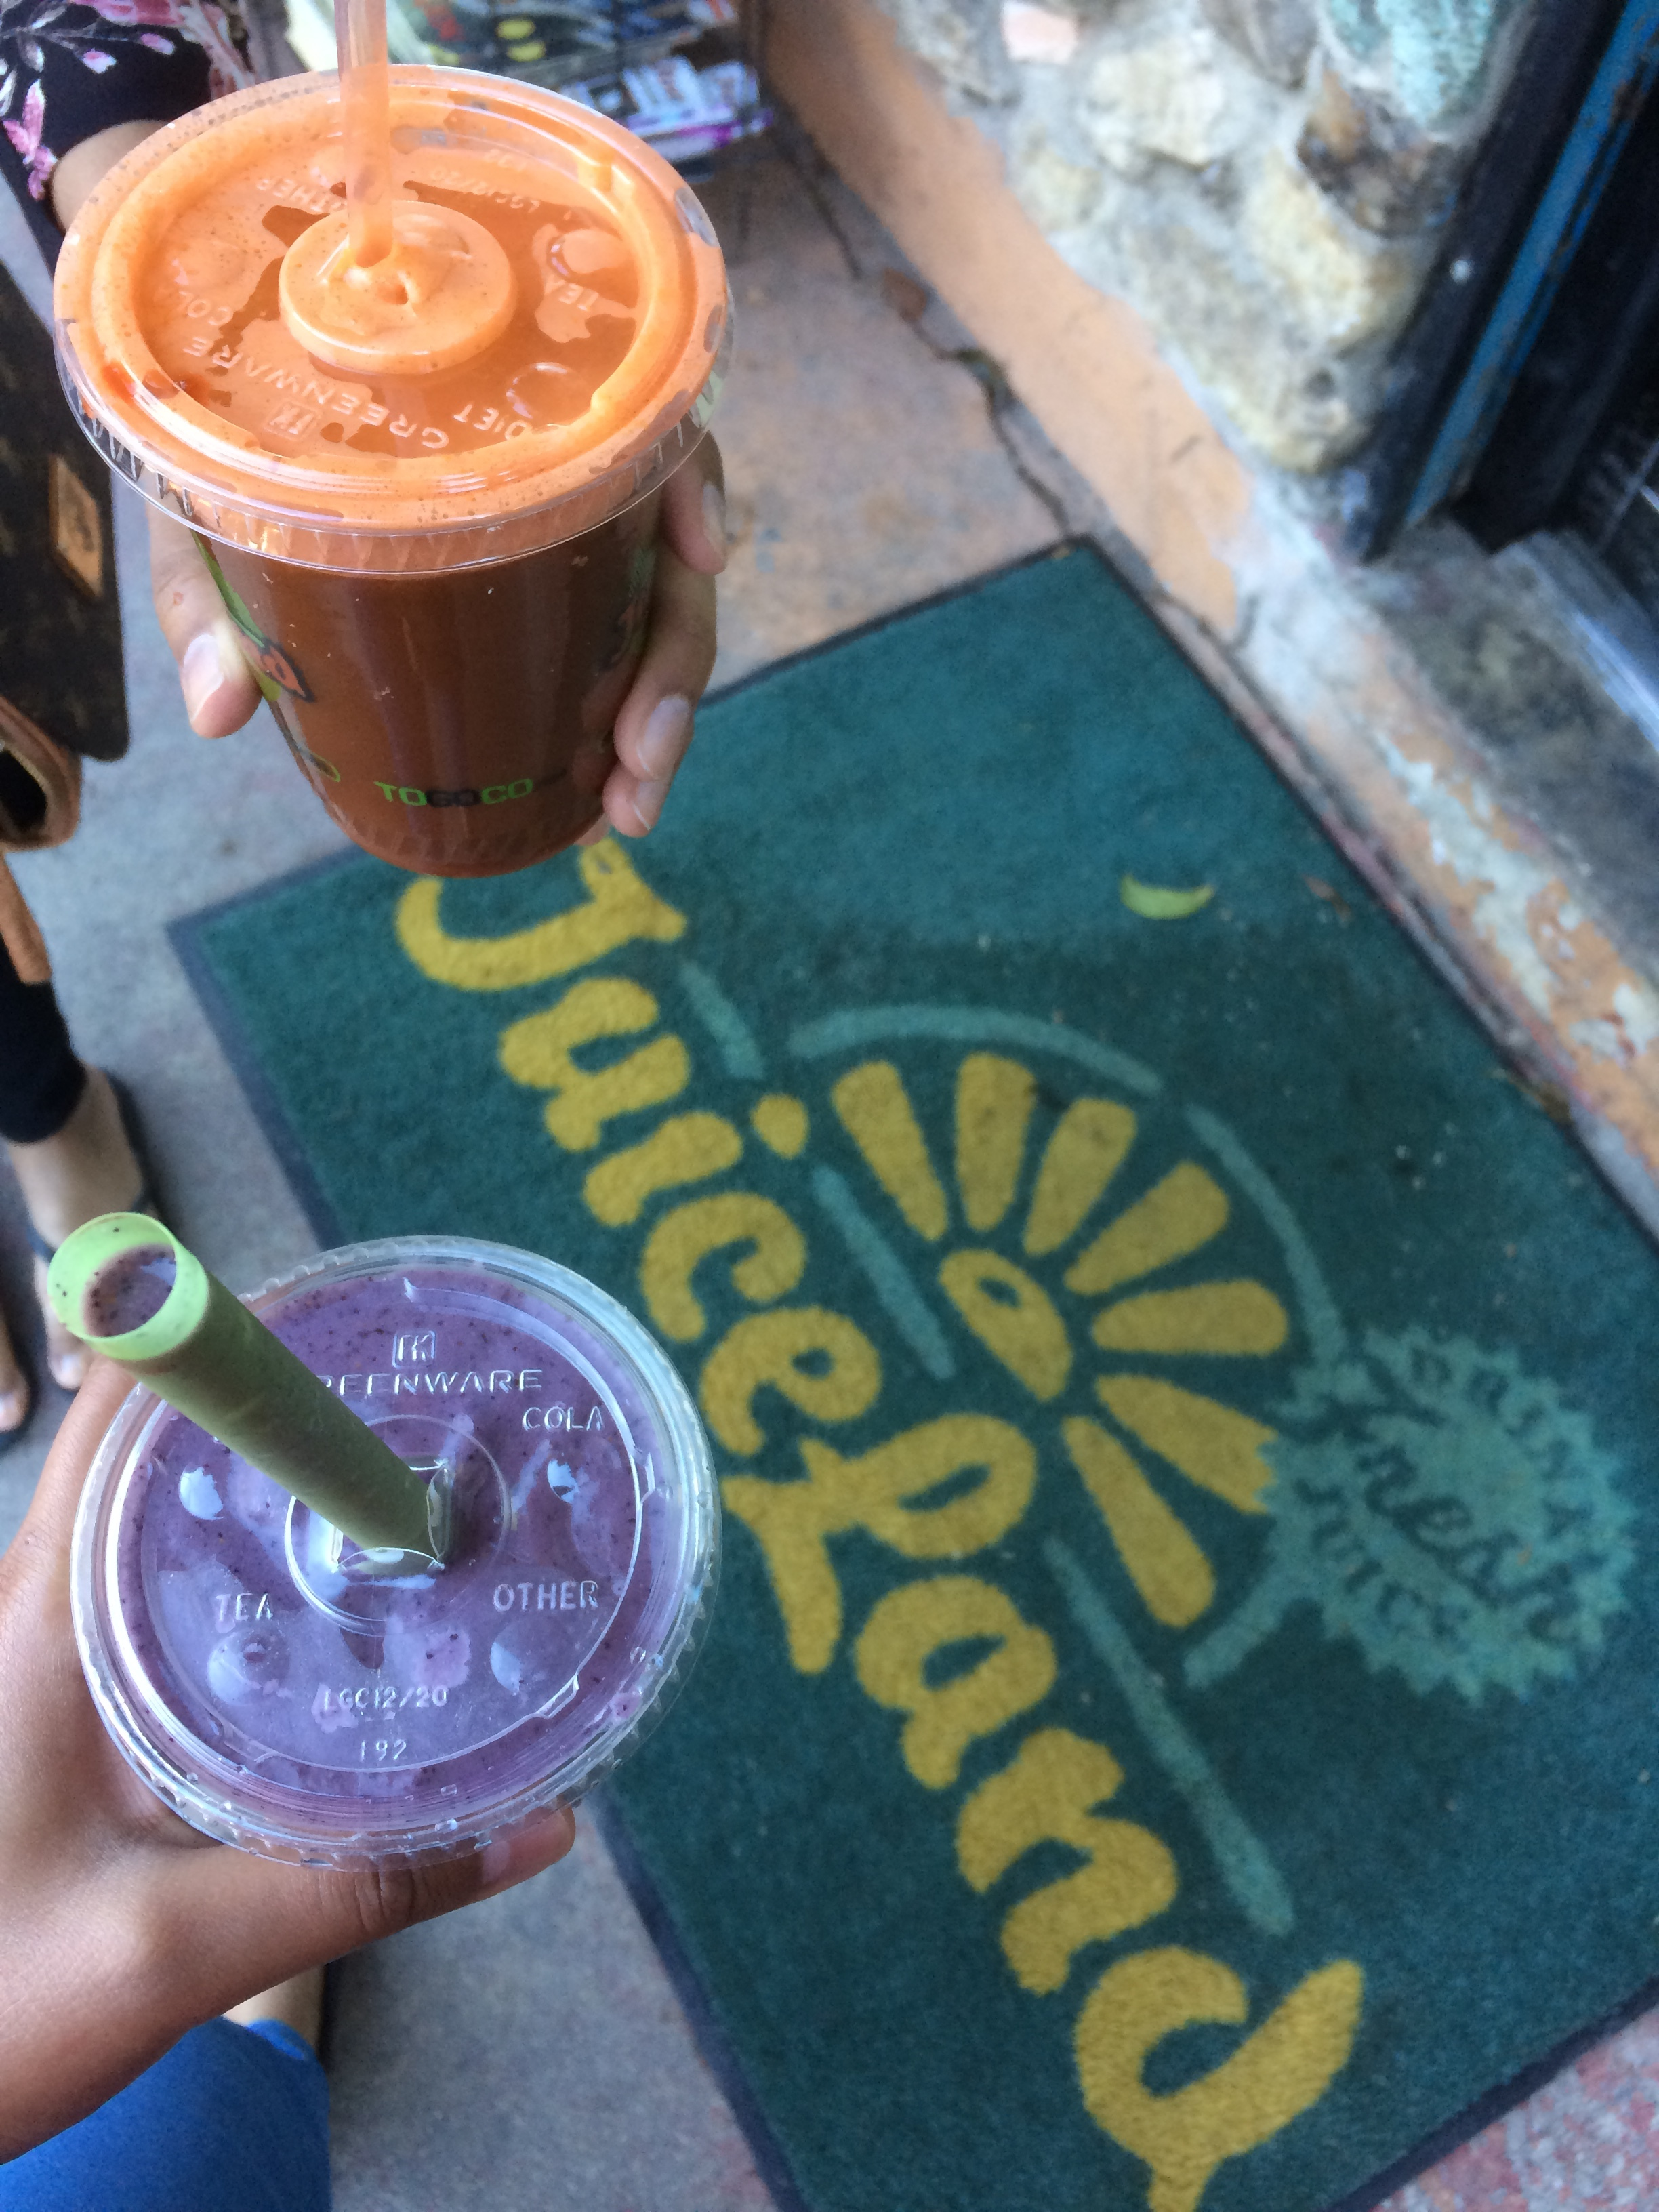 Green Cleanse  - This popular Austin chain takes raw juices and blends into a healthy drink. But, this is just easier to make at home. Click here for creative ideas!